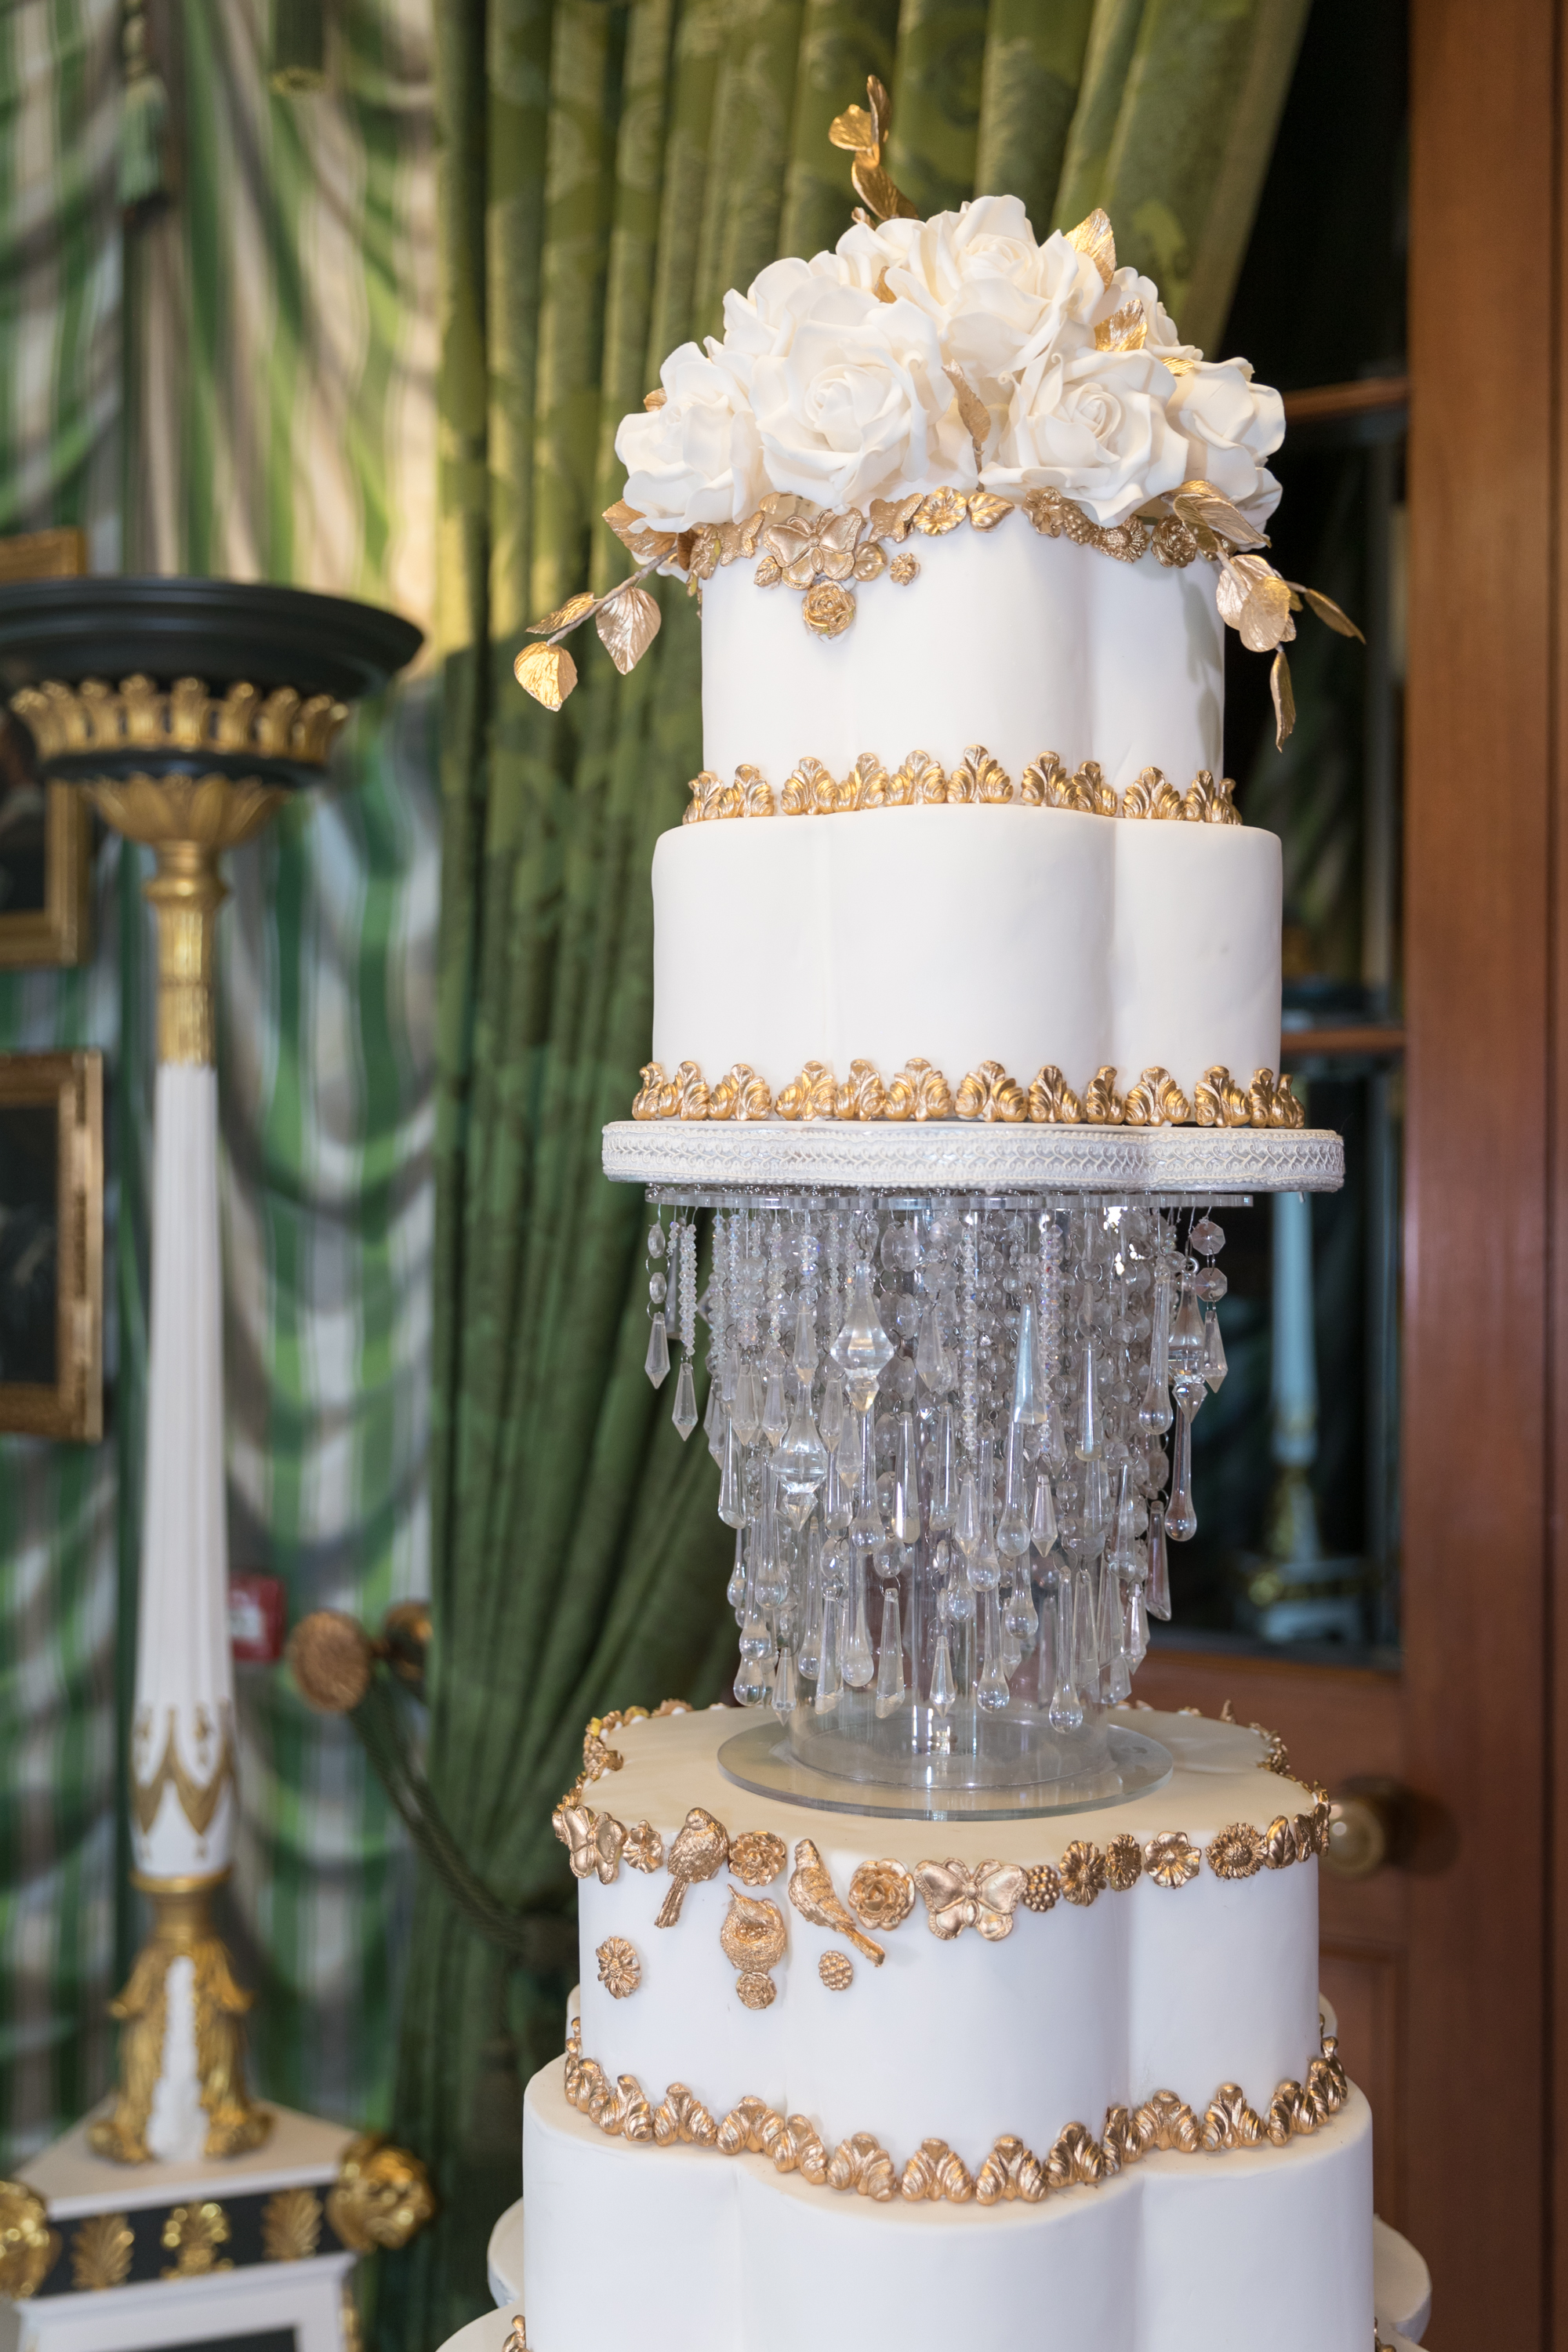 Luxury Wedding Cake at The Lanesborough Hotel